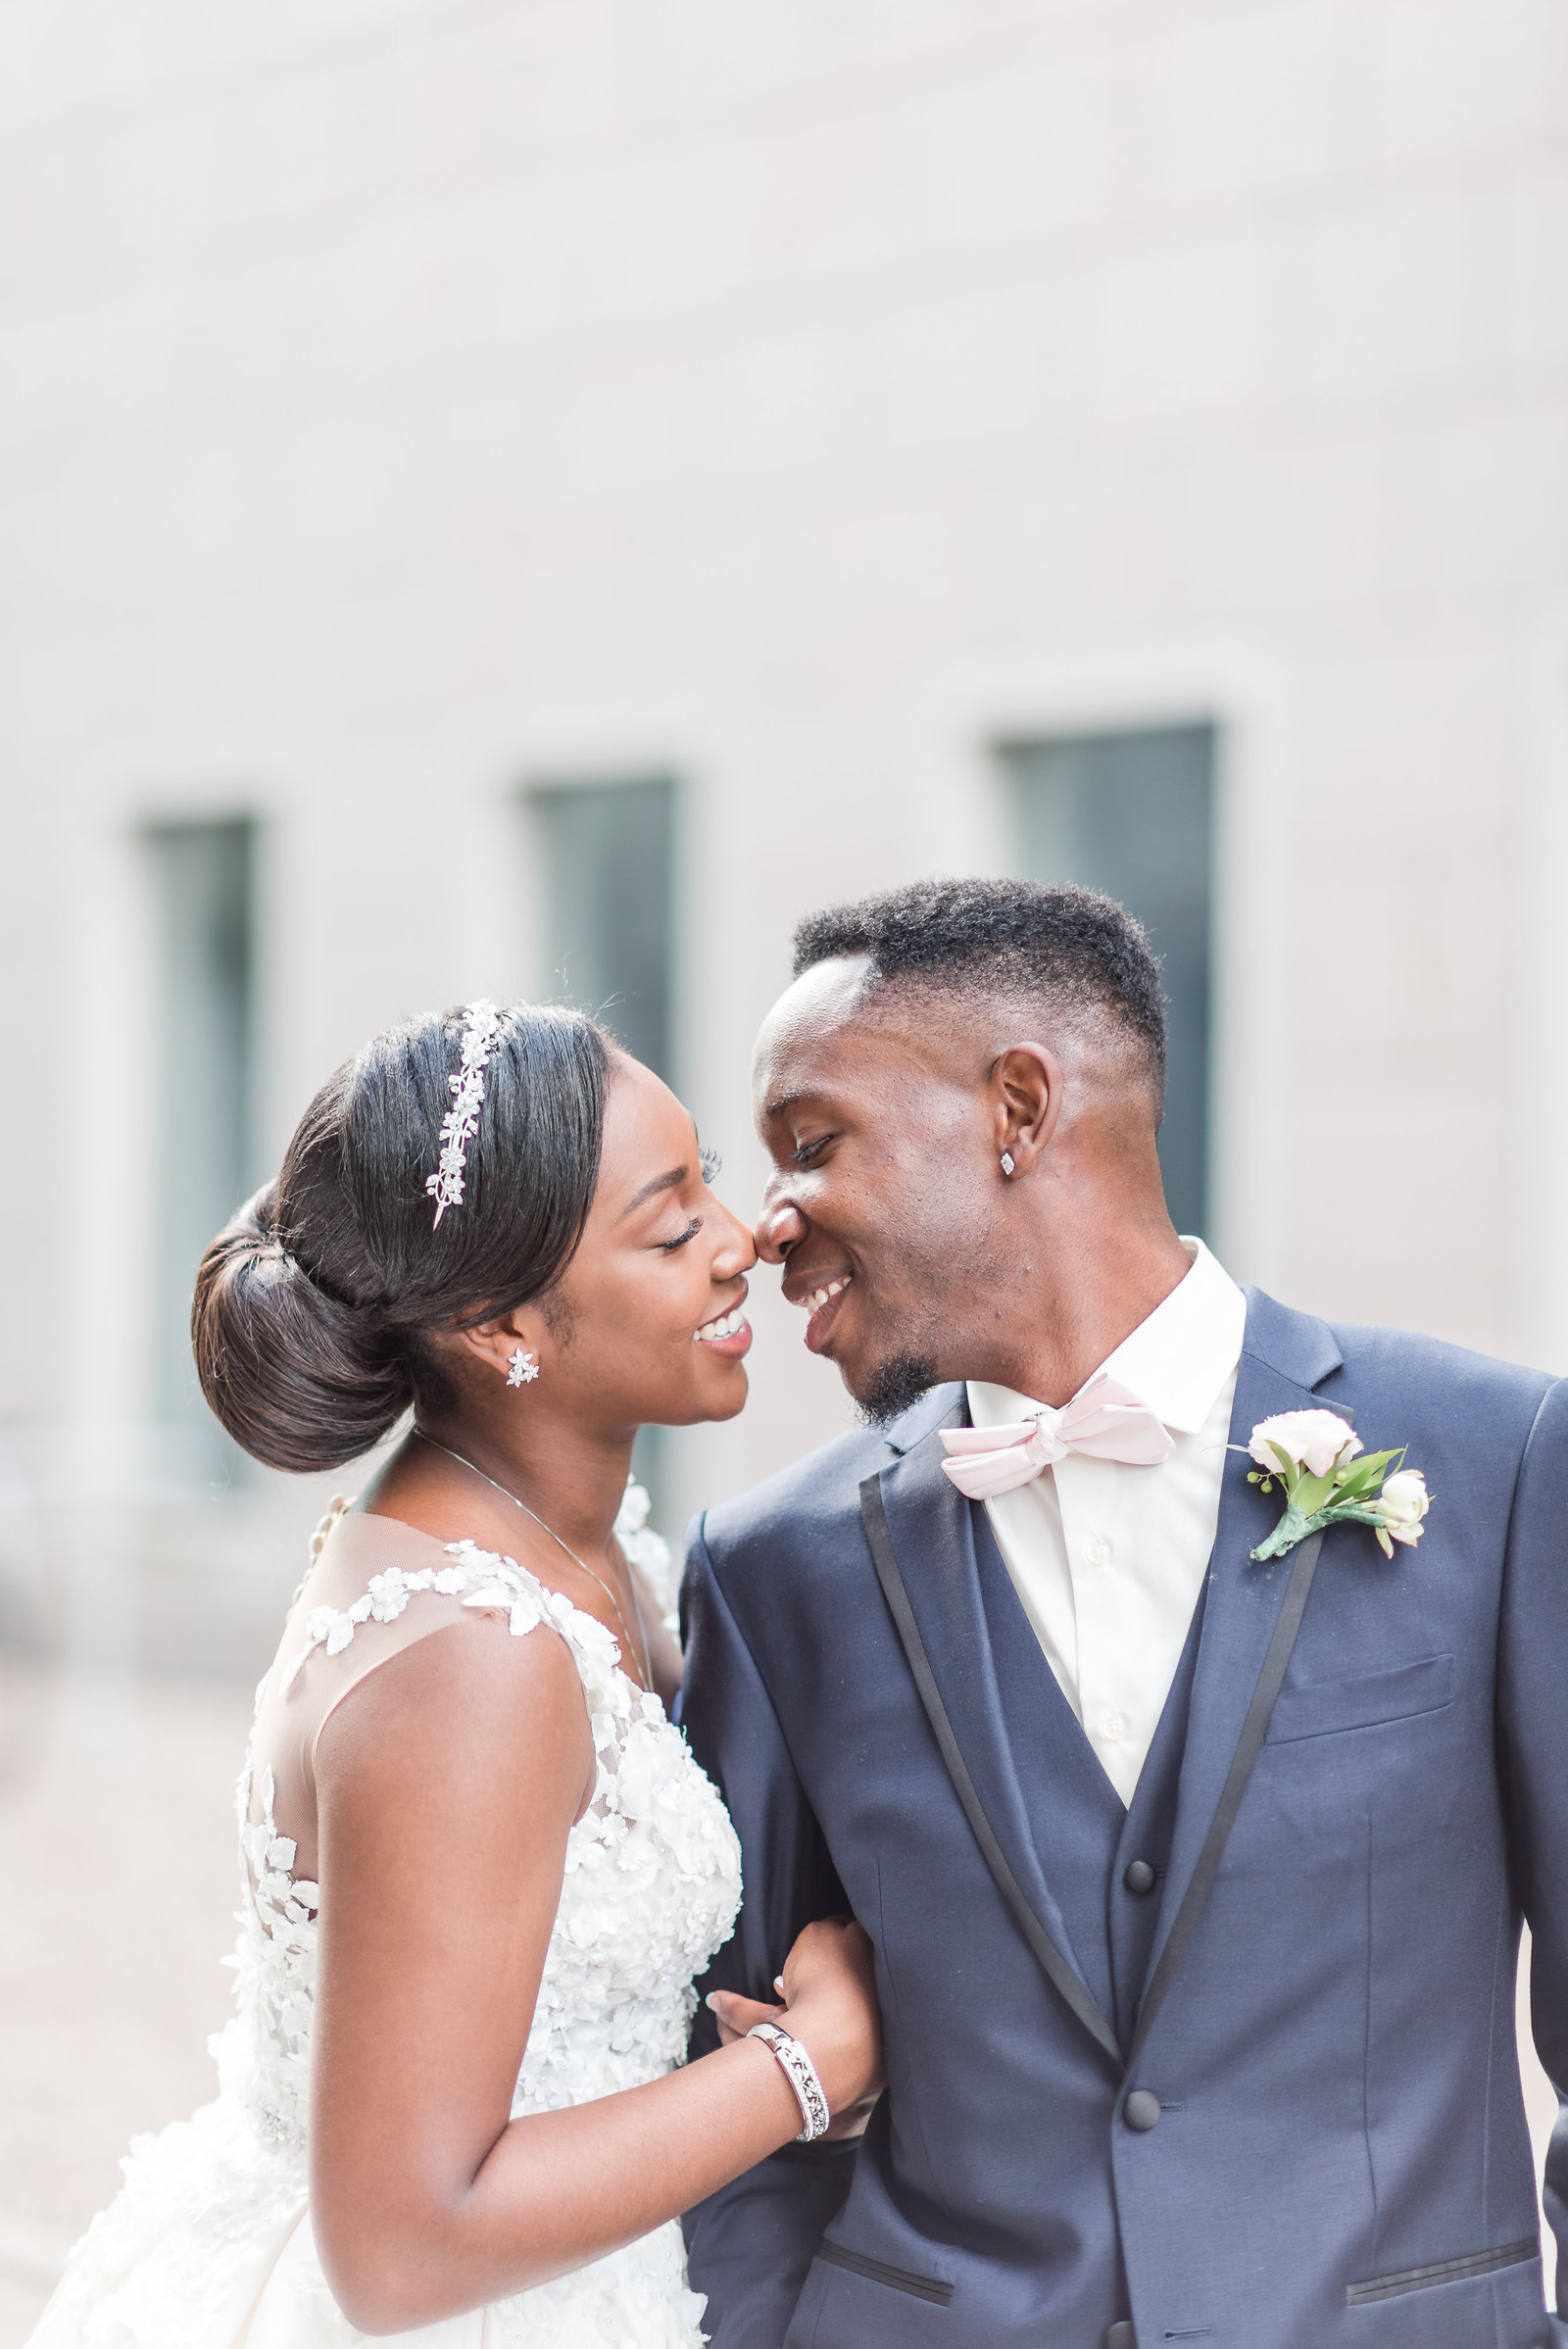 Samantha-Akeem-Wedding-170145